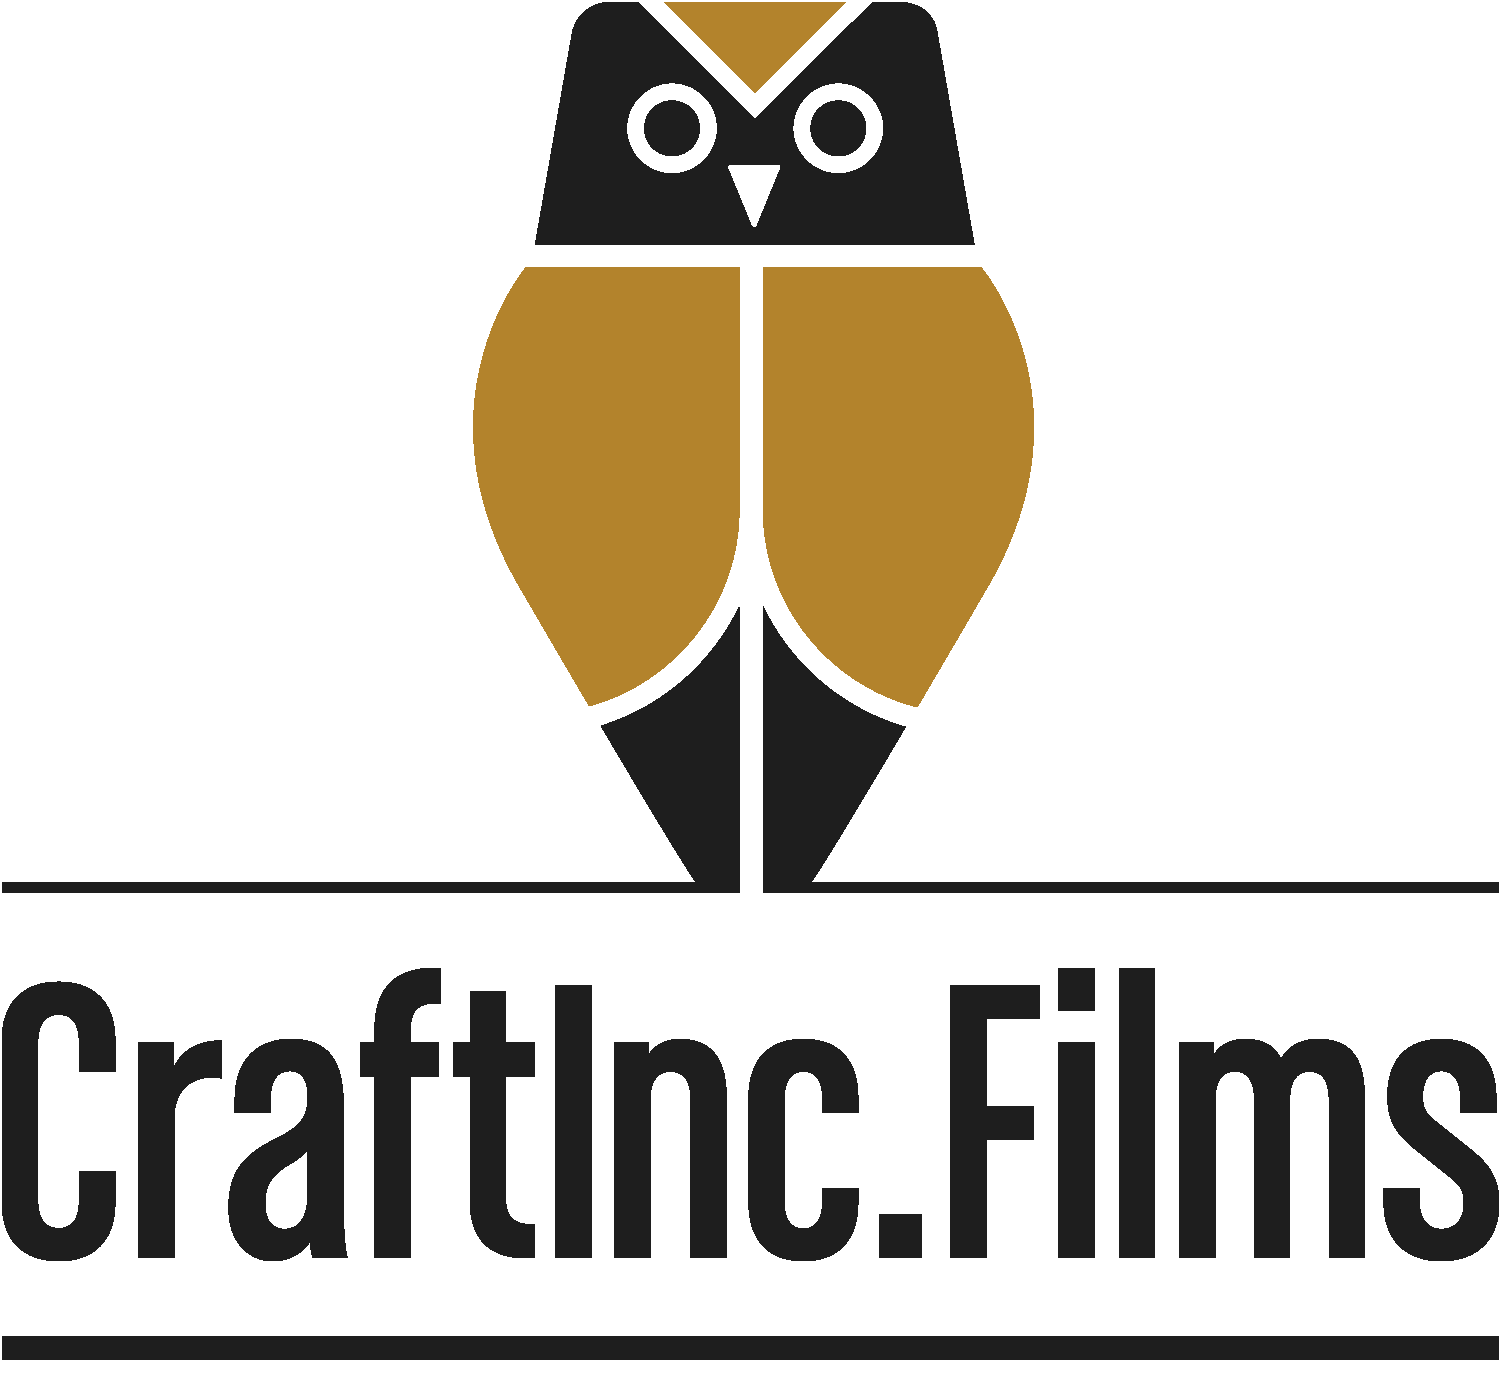 CraftInc. Films